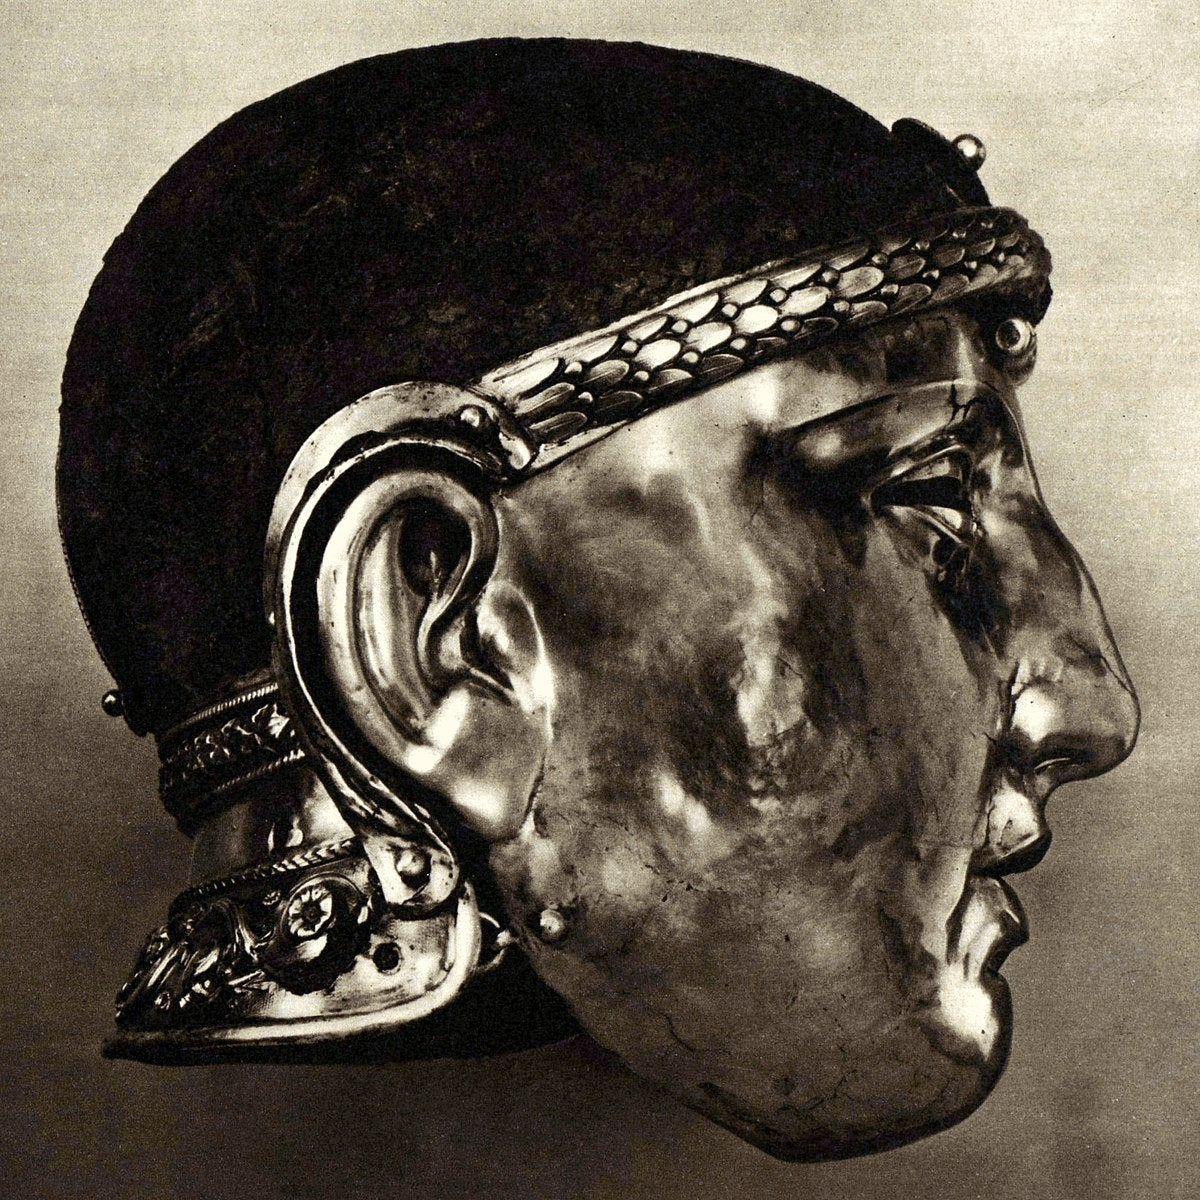 New podcast Ep this Fri: Deposing the last Seleucid King, Antiochus XIII, wasnt enough for Pompey. He soon ordered Samsigeramus, ruler (phylarch) of the Emesene tribe, to kidnap and kill him. Samsigeramus was rewarded by Rome with the role of local client king.